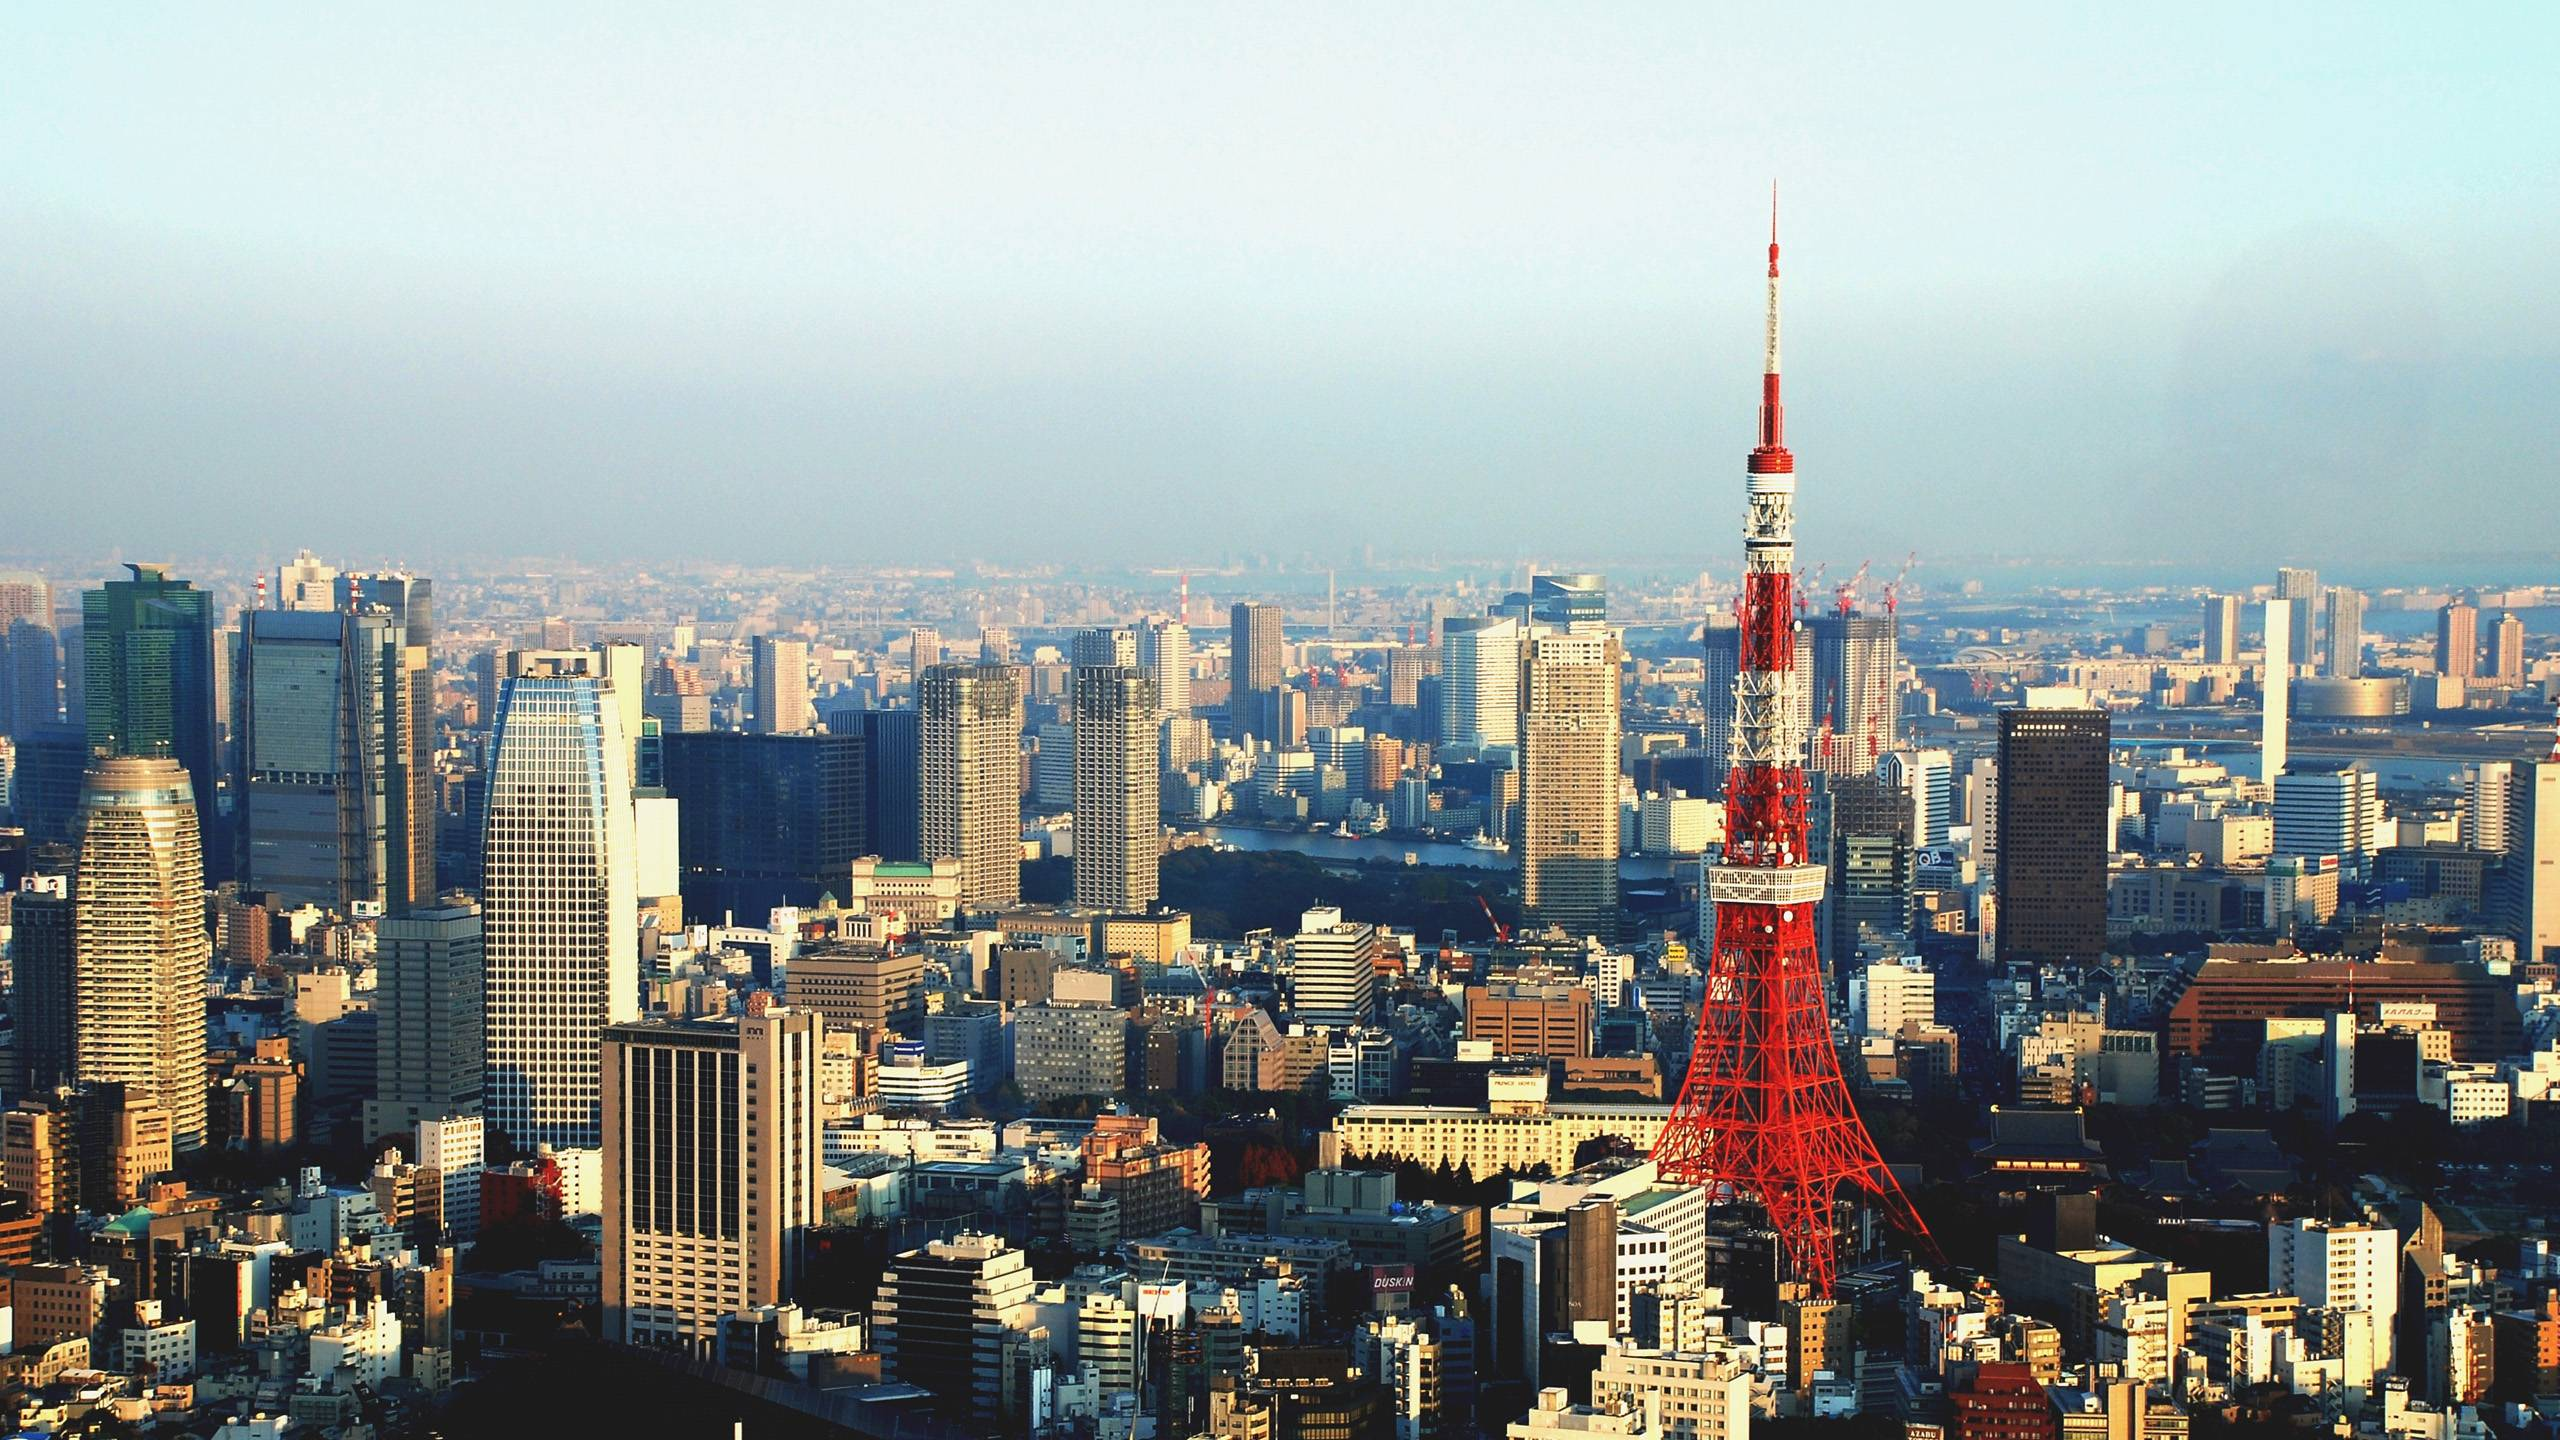 Tokyo wallpapers wallpaper cave - Photo of wallpaper ...